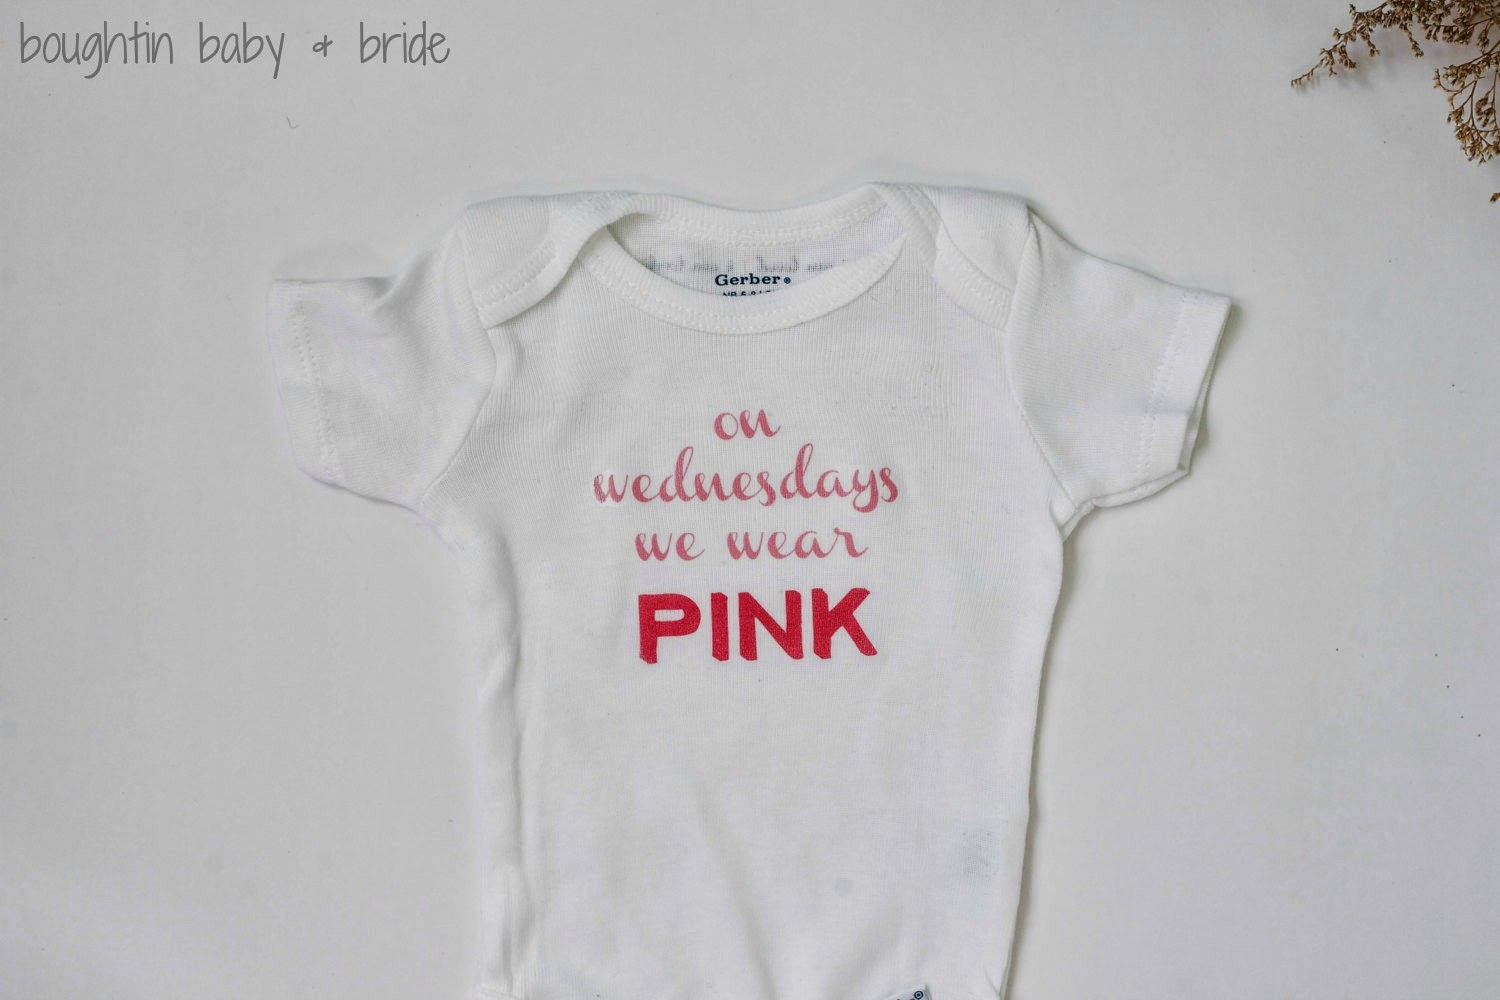 42ca3727 I mean, come on, a Mean Girls reference on a onesie? Brilliant + Adorable. I  was so excited when Cady wanted me to do a feature post on her shop.